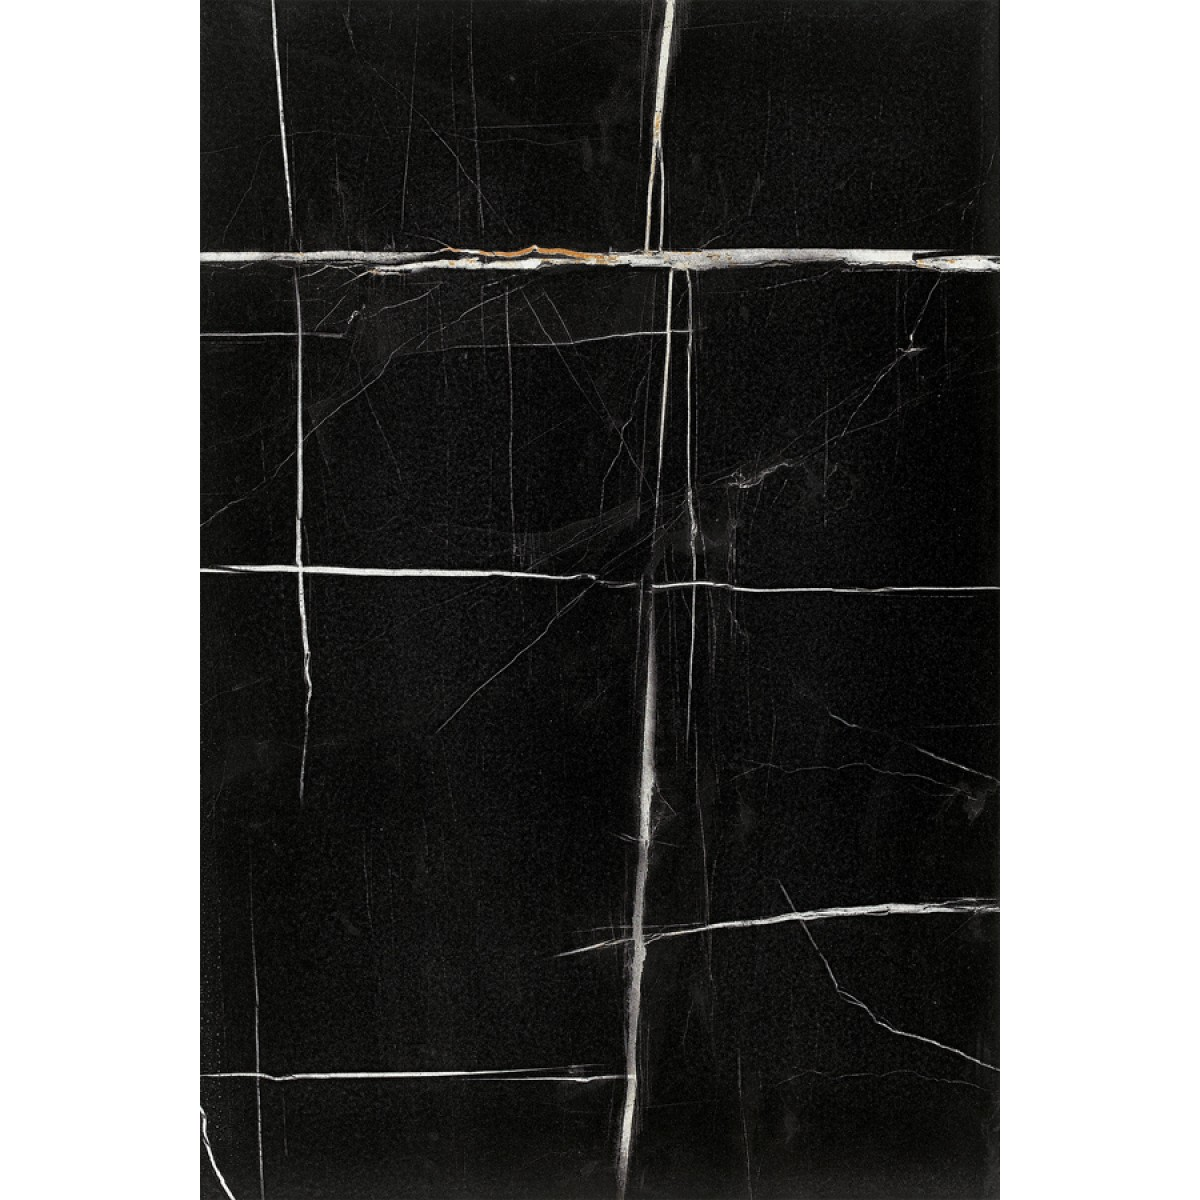 Laurent Black 60x90x1,2cm poliert